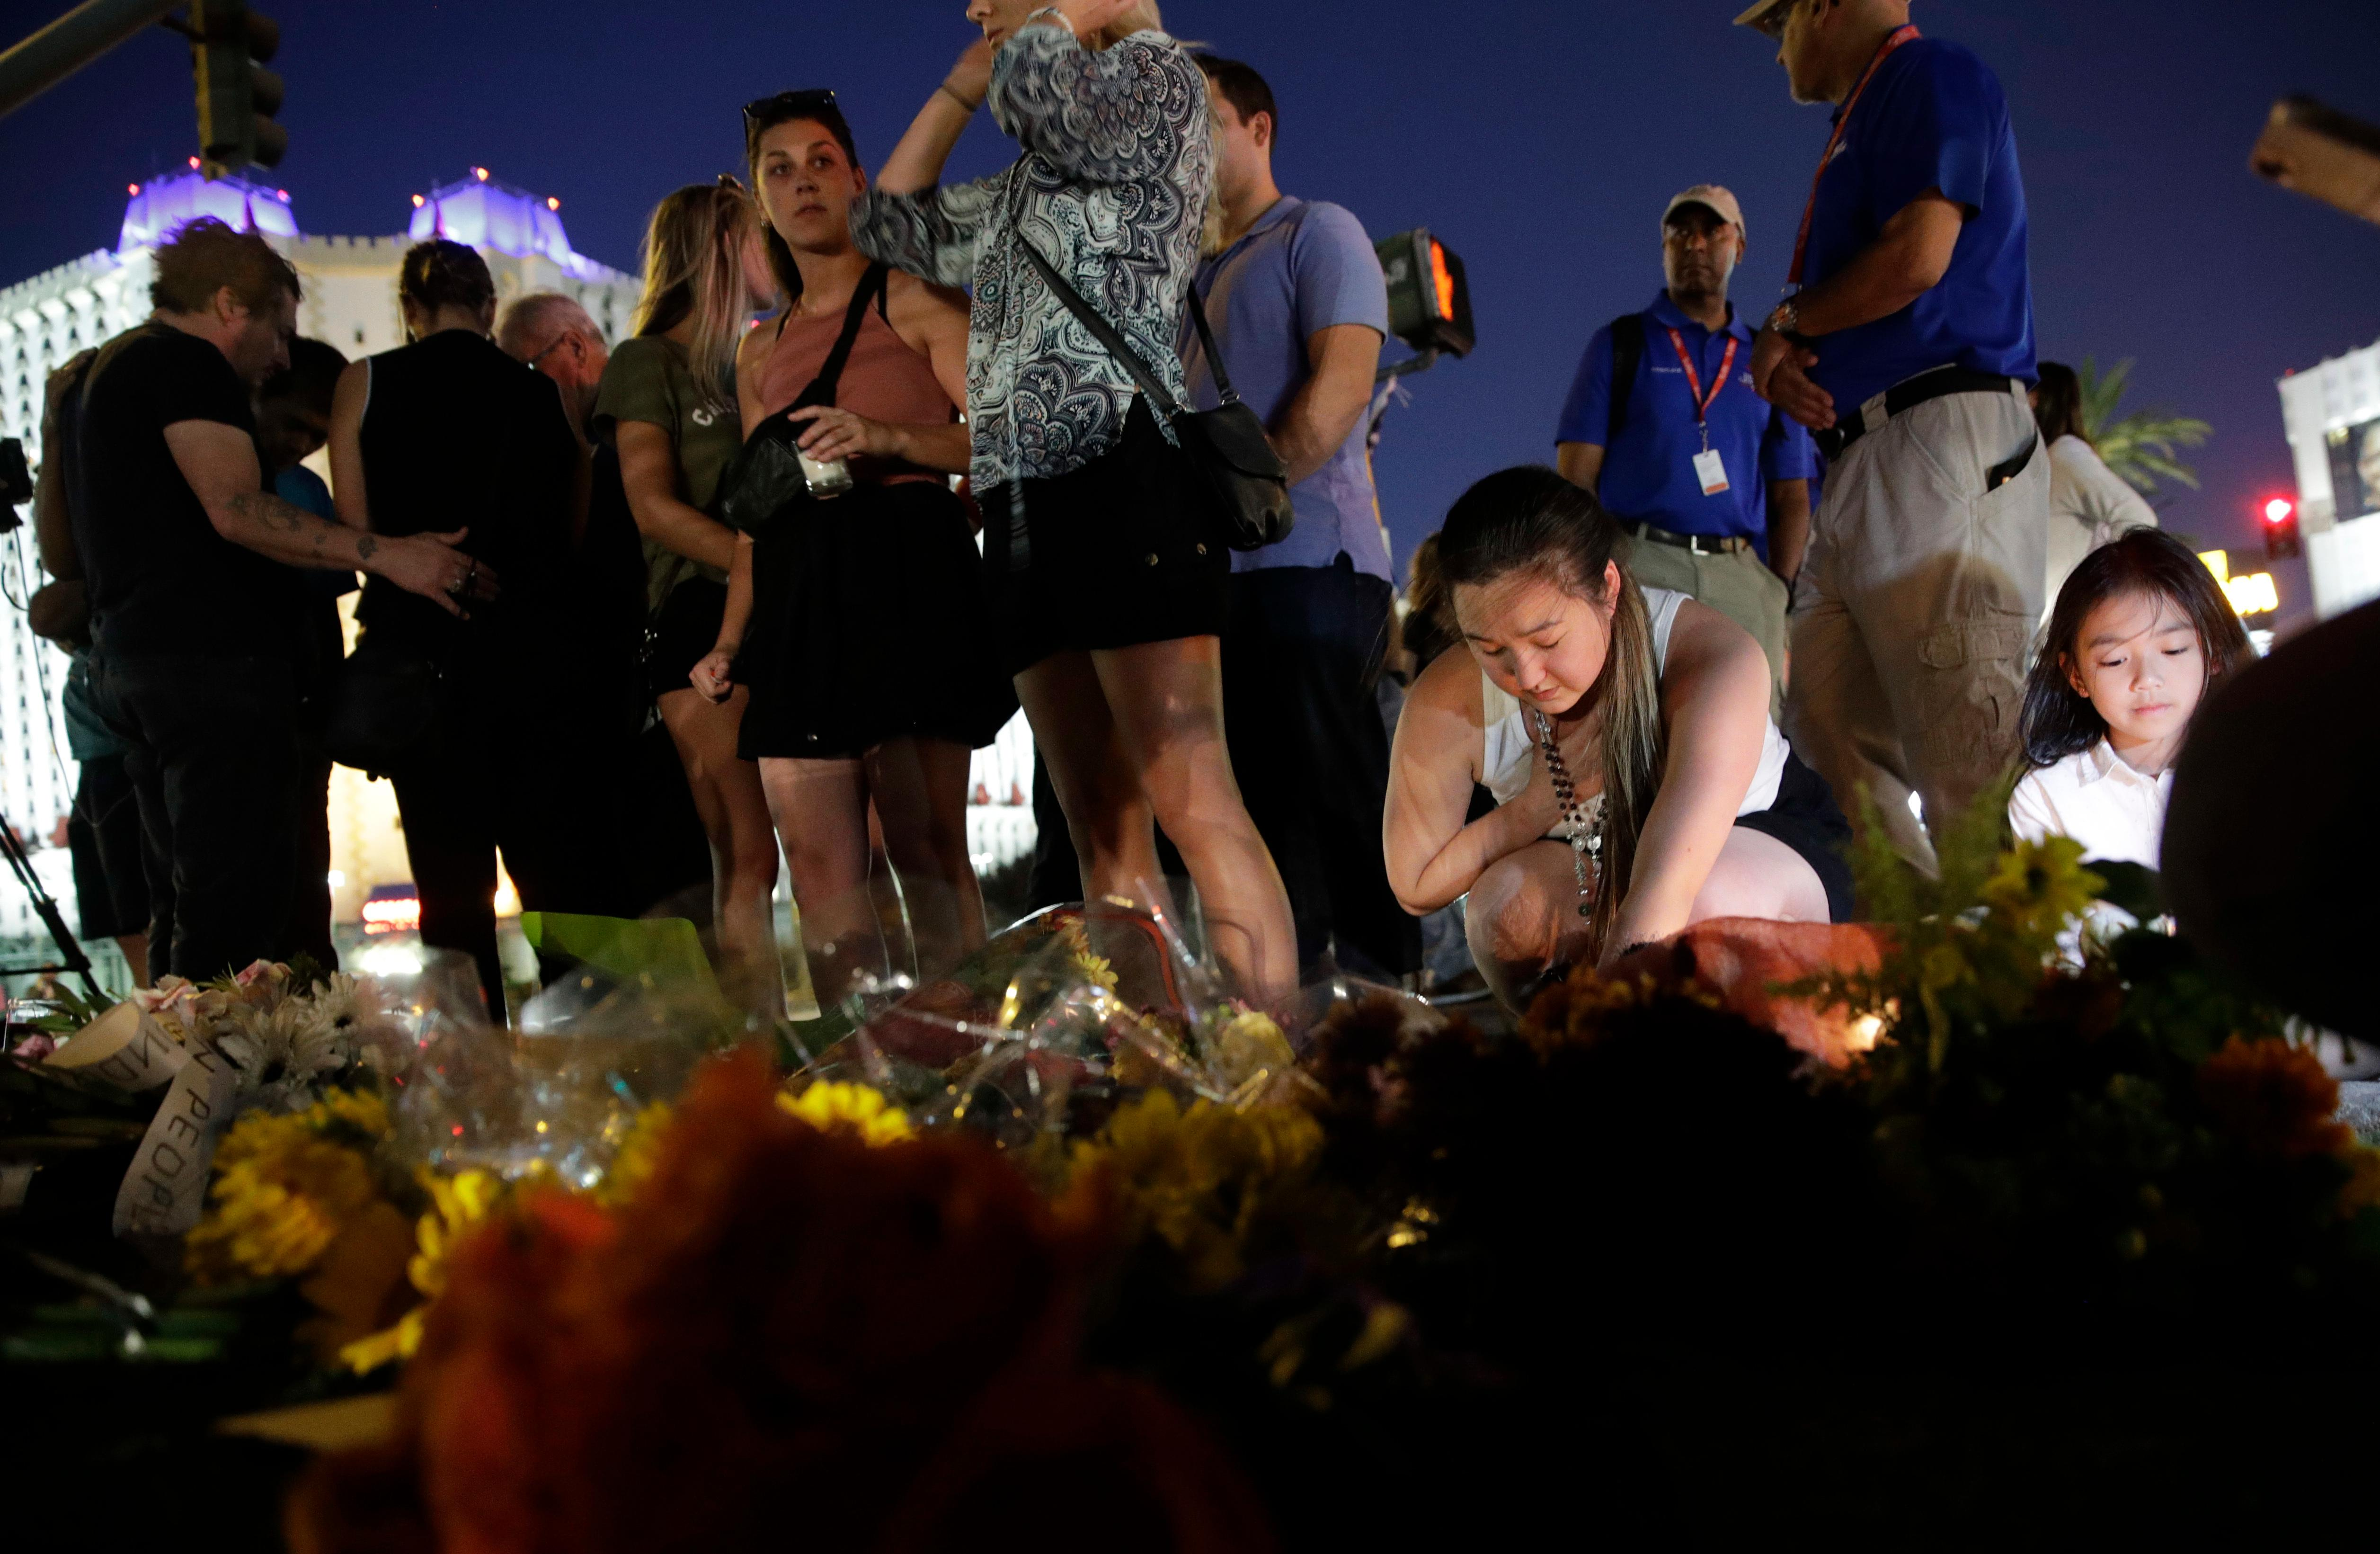 People pause at a memorial set up for victims of a mass shooting in Las Vegas, on Tuesday, Oct. 3, 2017. A gunman opened fire on an outdoor music concert on Sunday. It was the deadliest mass shooting in modern U.S. history, with dozens of people killed and hundreds injured, some by gunfire, some during the chaotic escape. (AP Photo/John Locher)